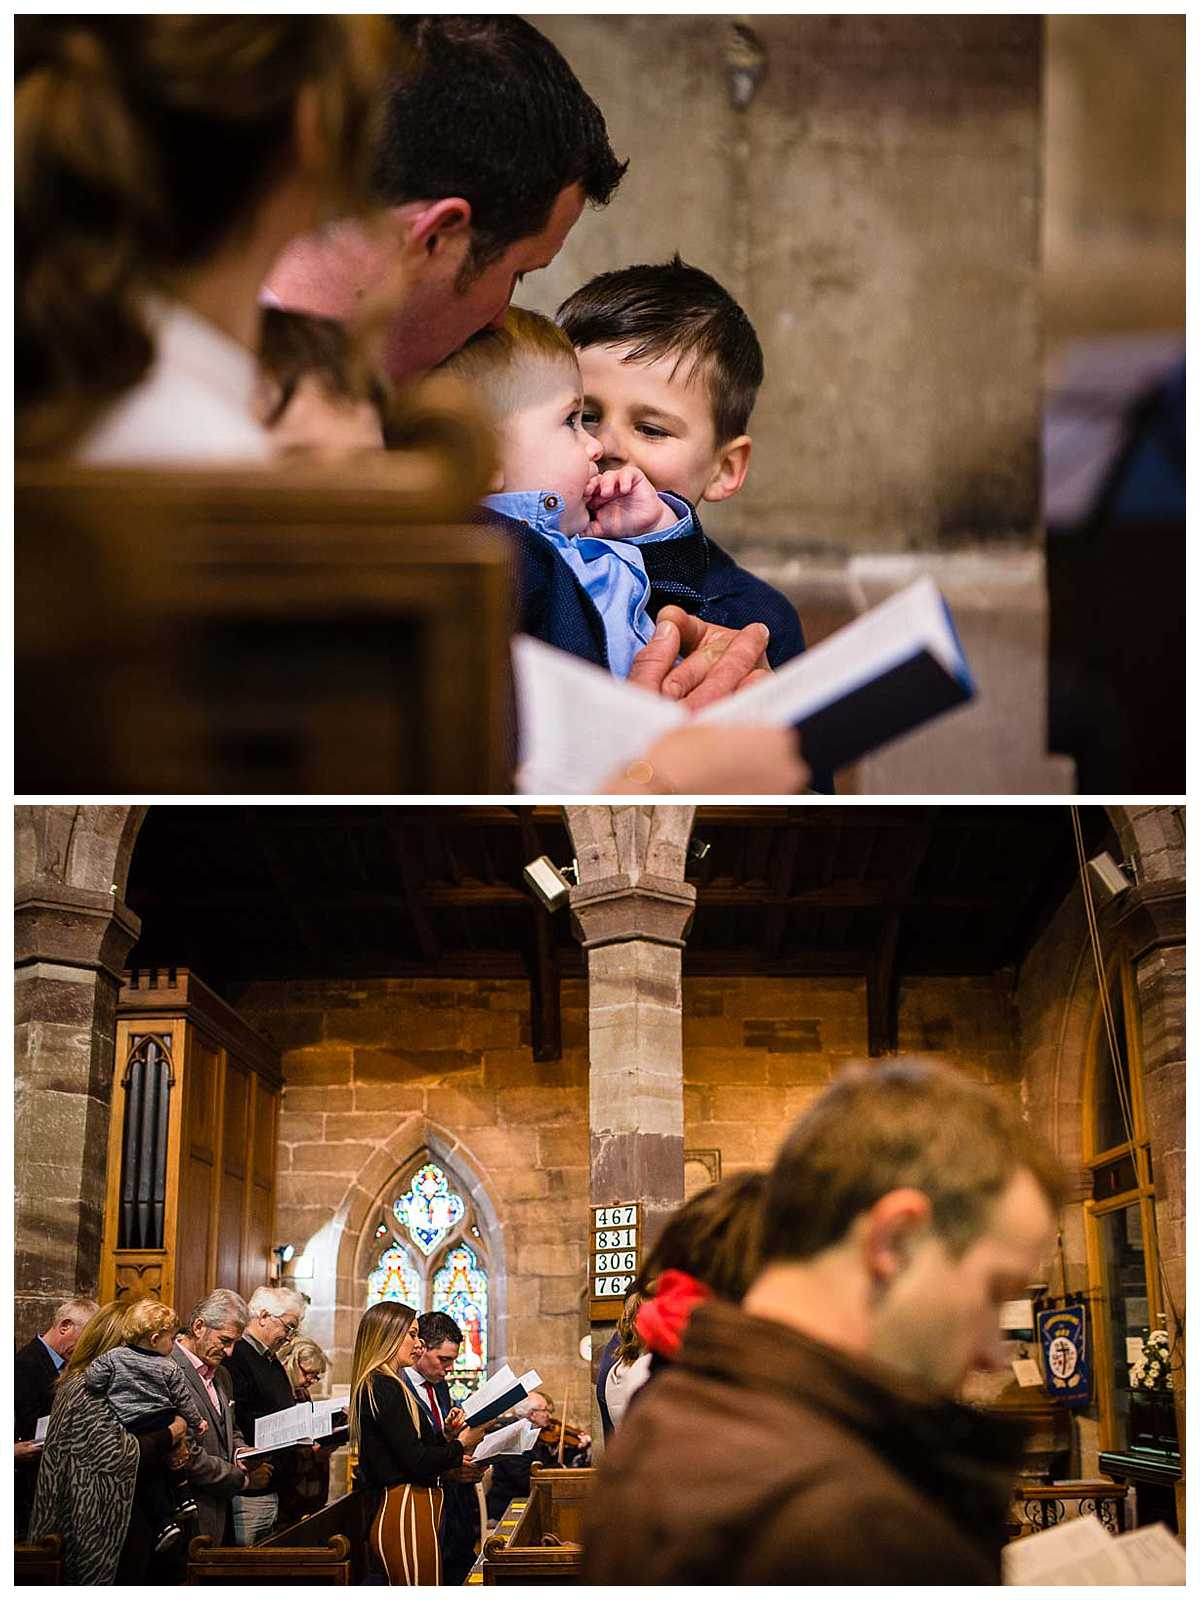 brothers playing close together during christening ceremony and overall view of st james church, audlem as guests sing